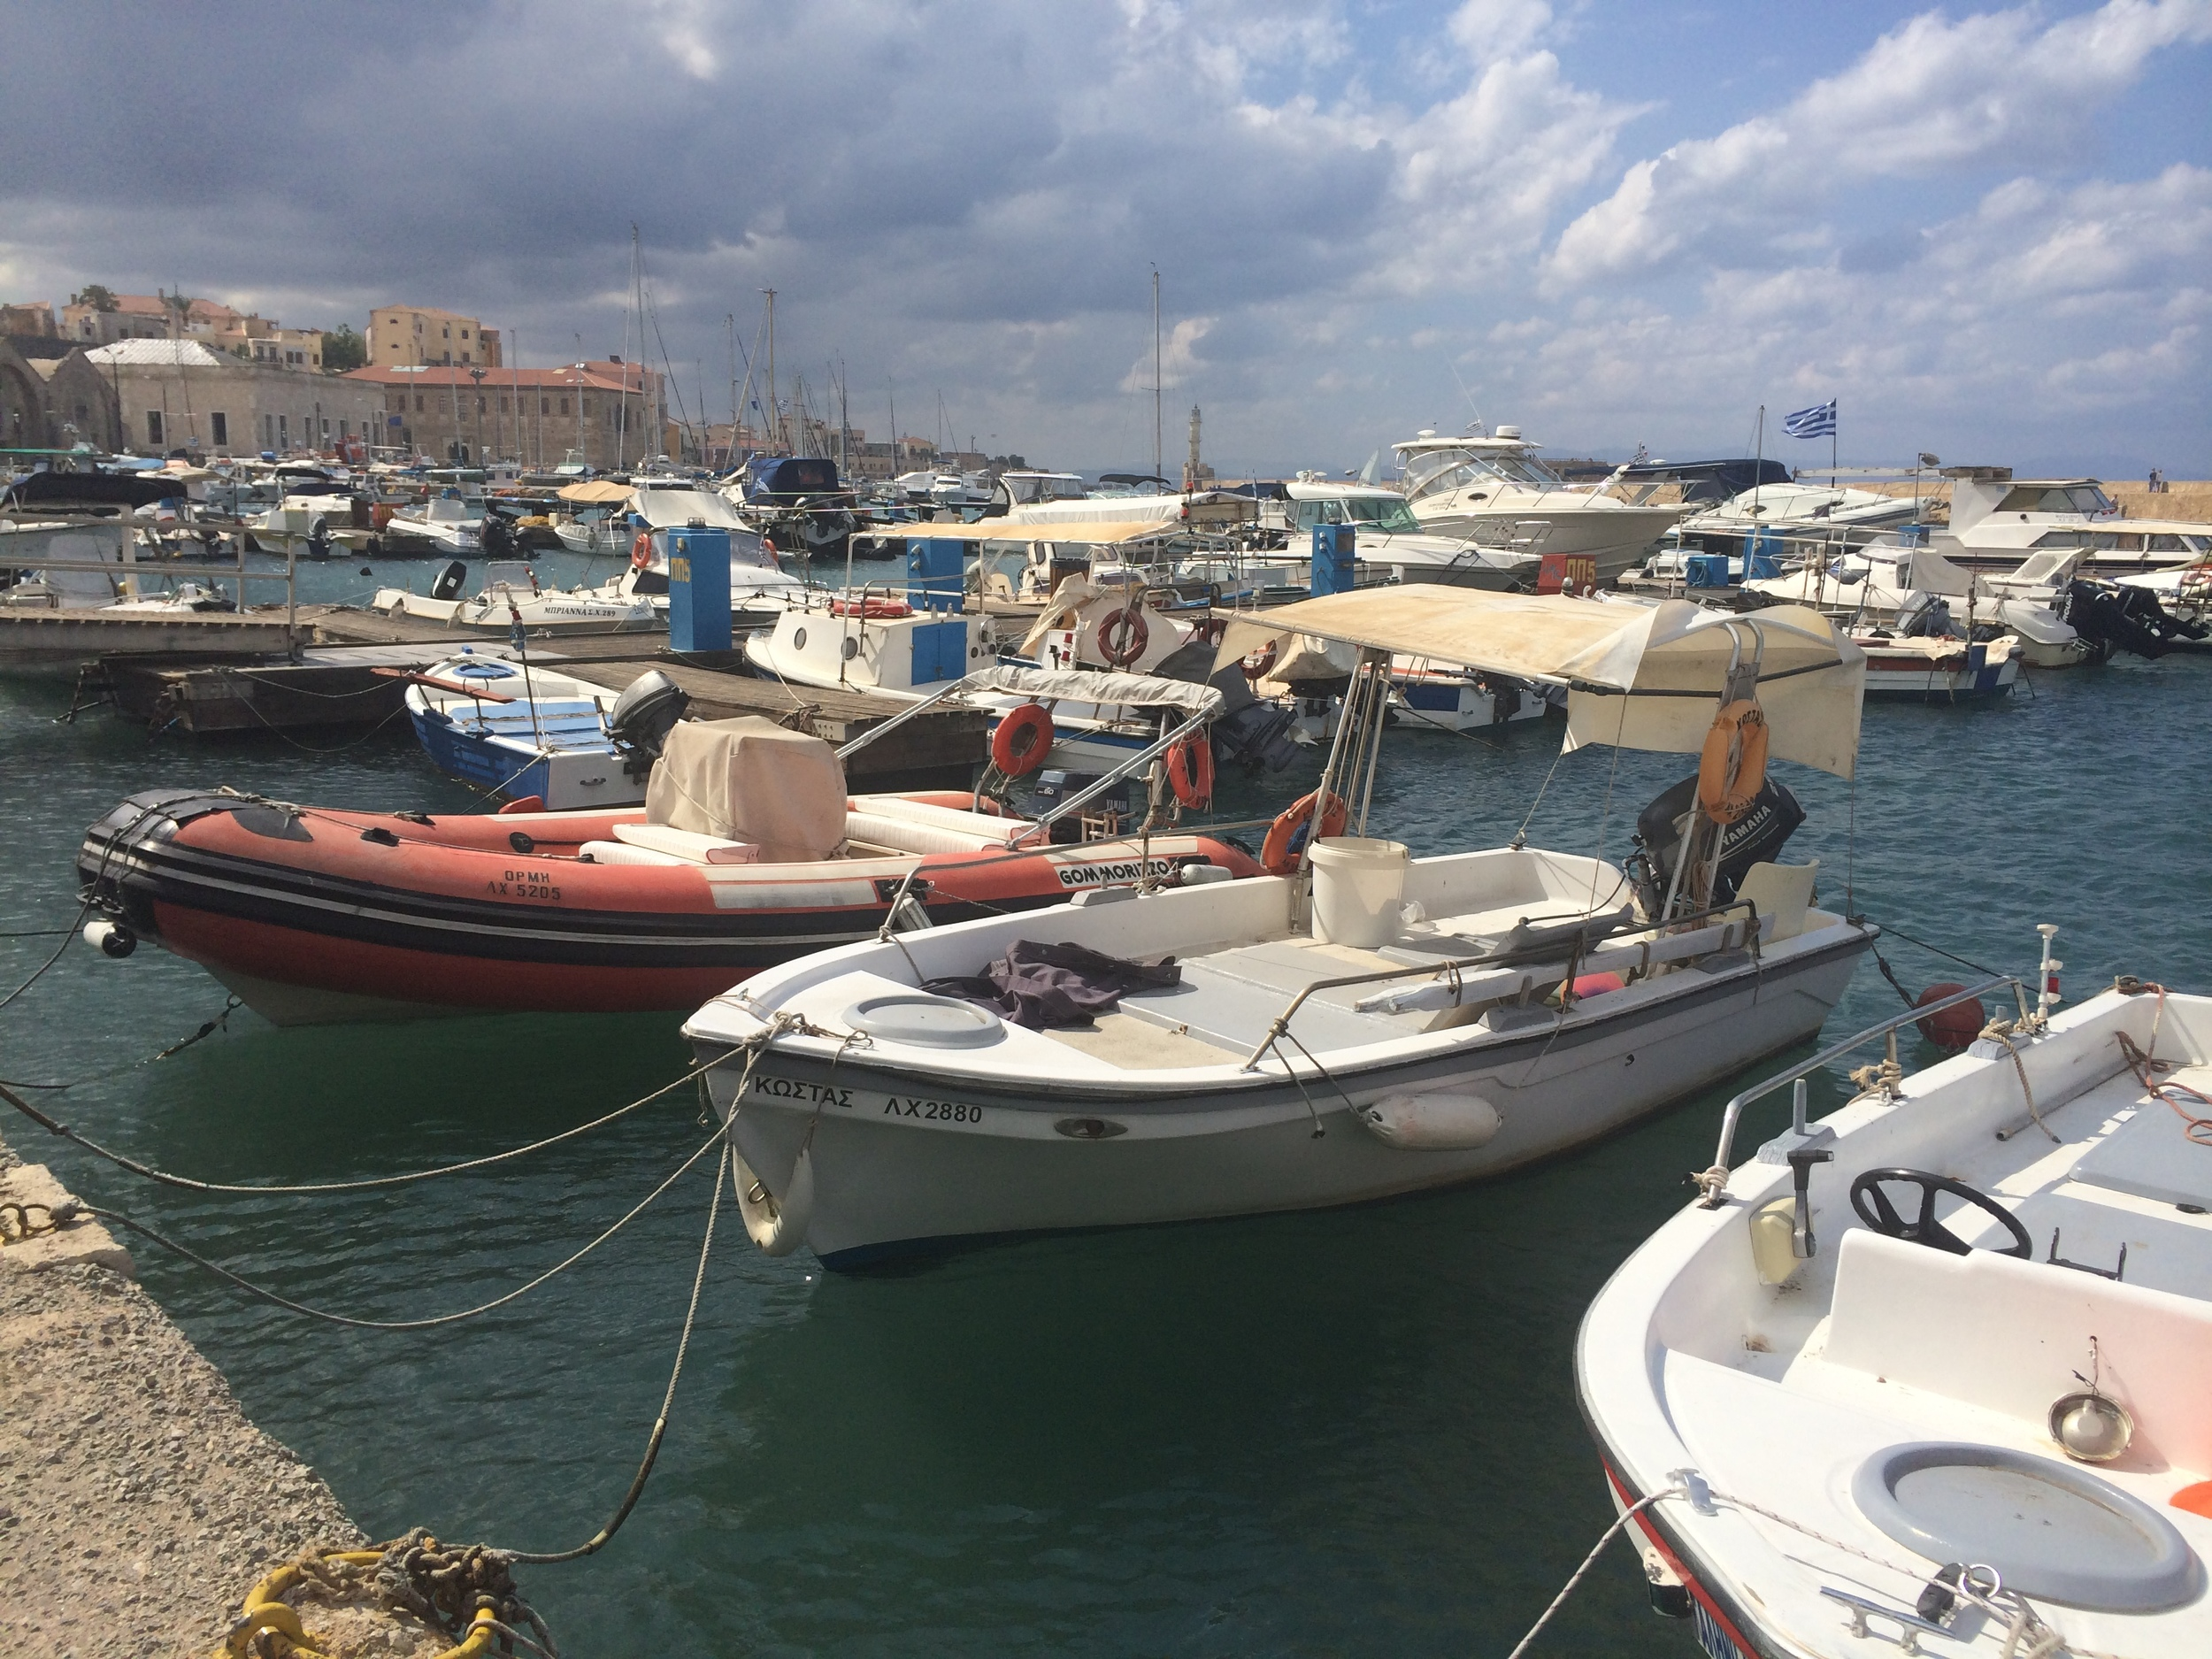 Chania port boats.jpg